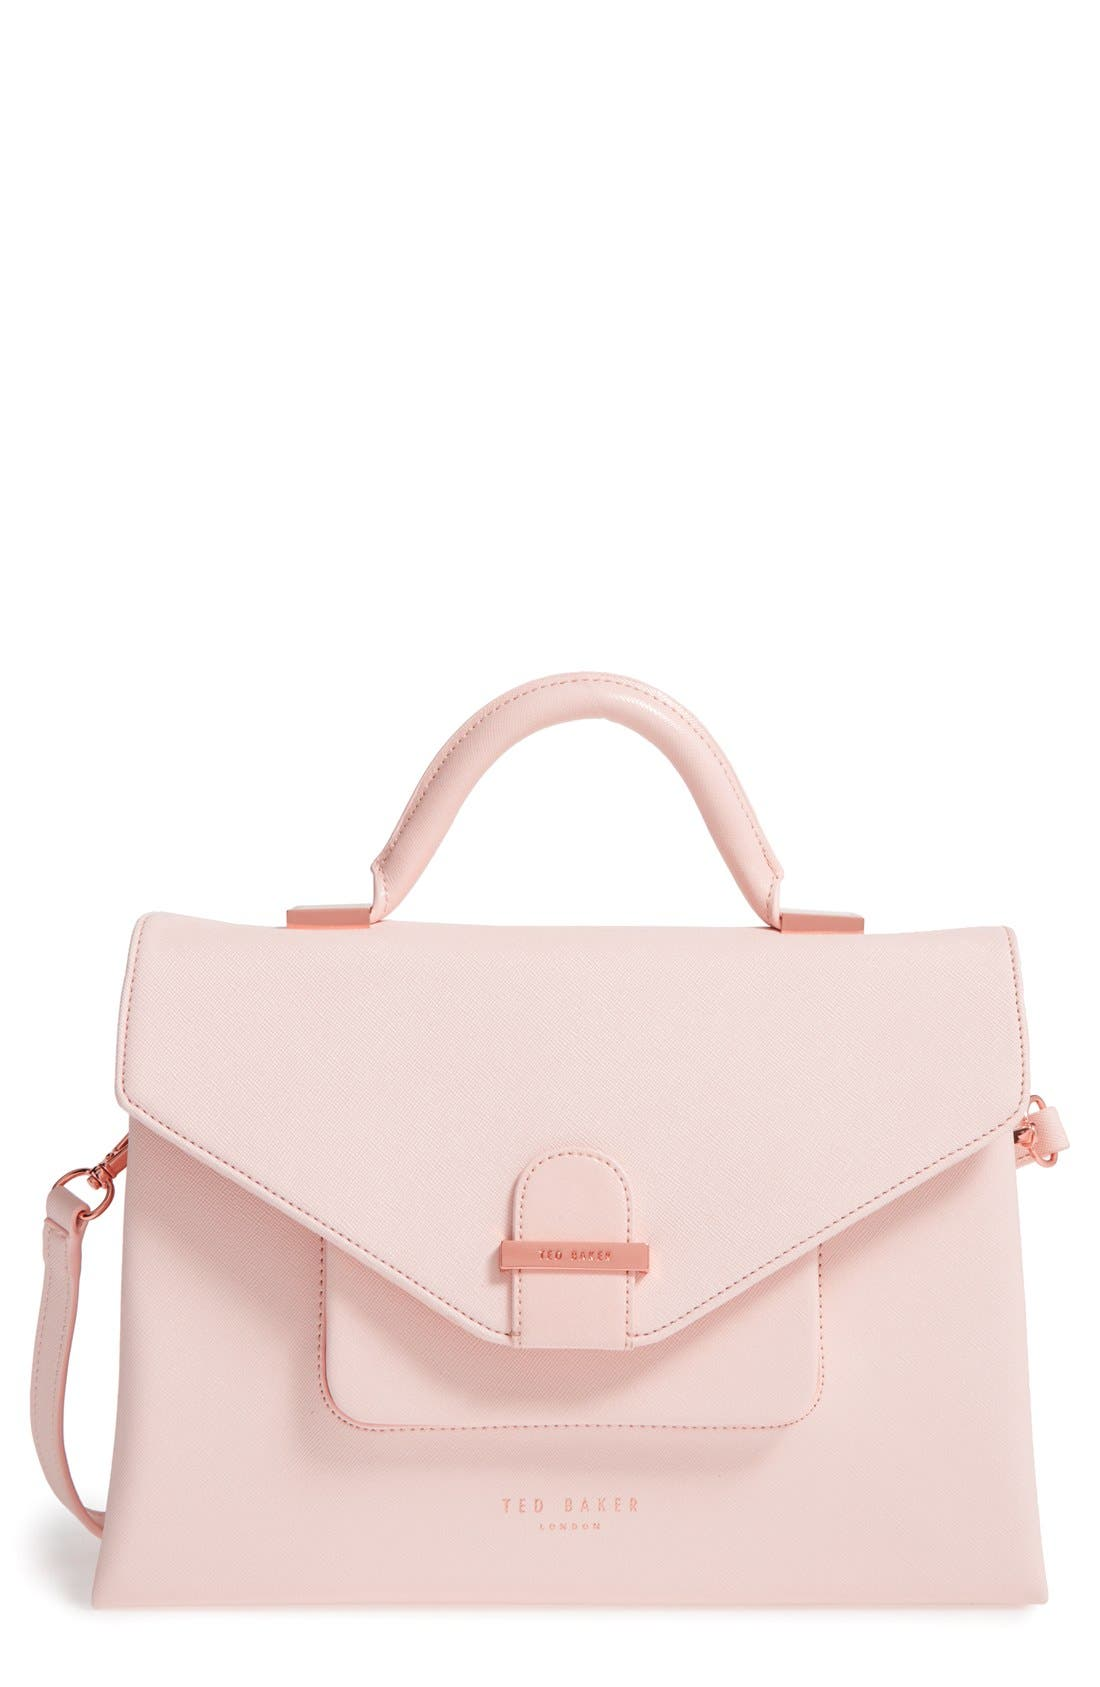 Main Image - Ted Baker London Faux Leather Satchel (Nordstrom Exclusive)